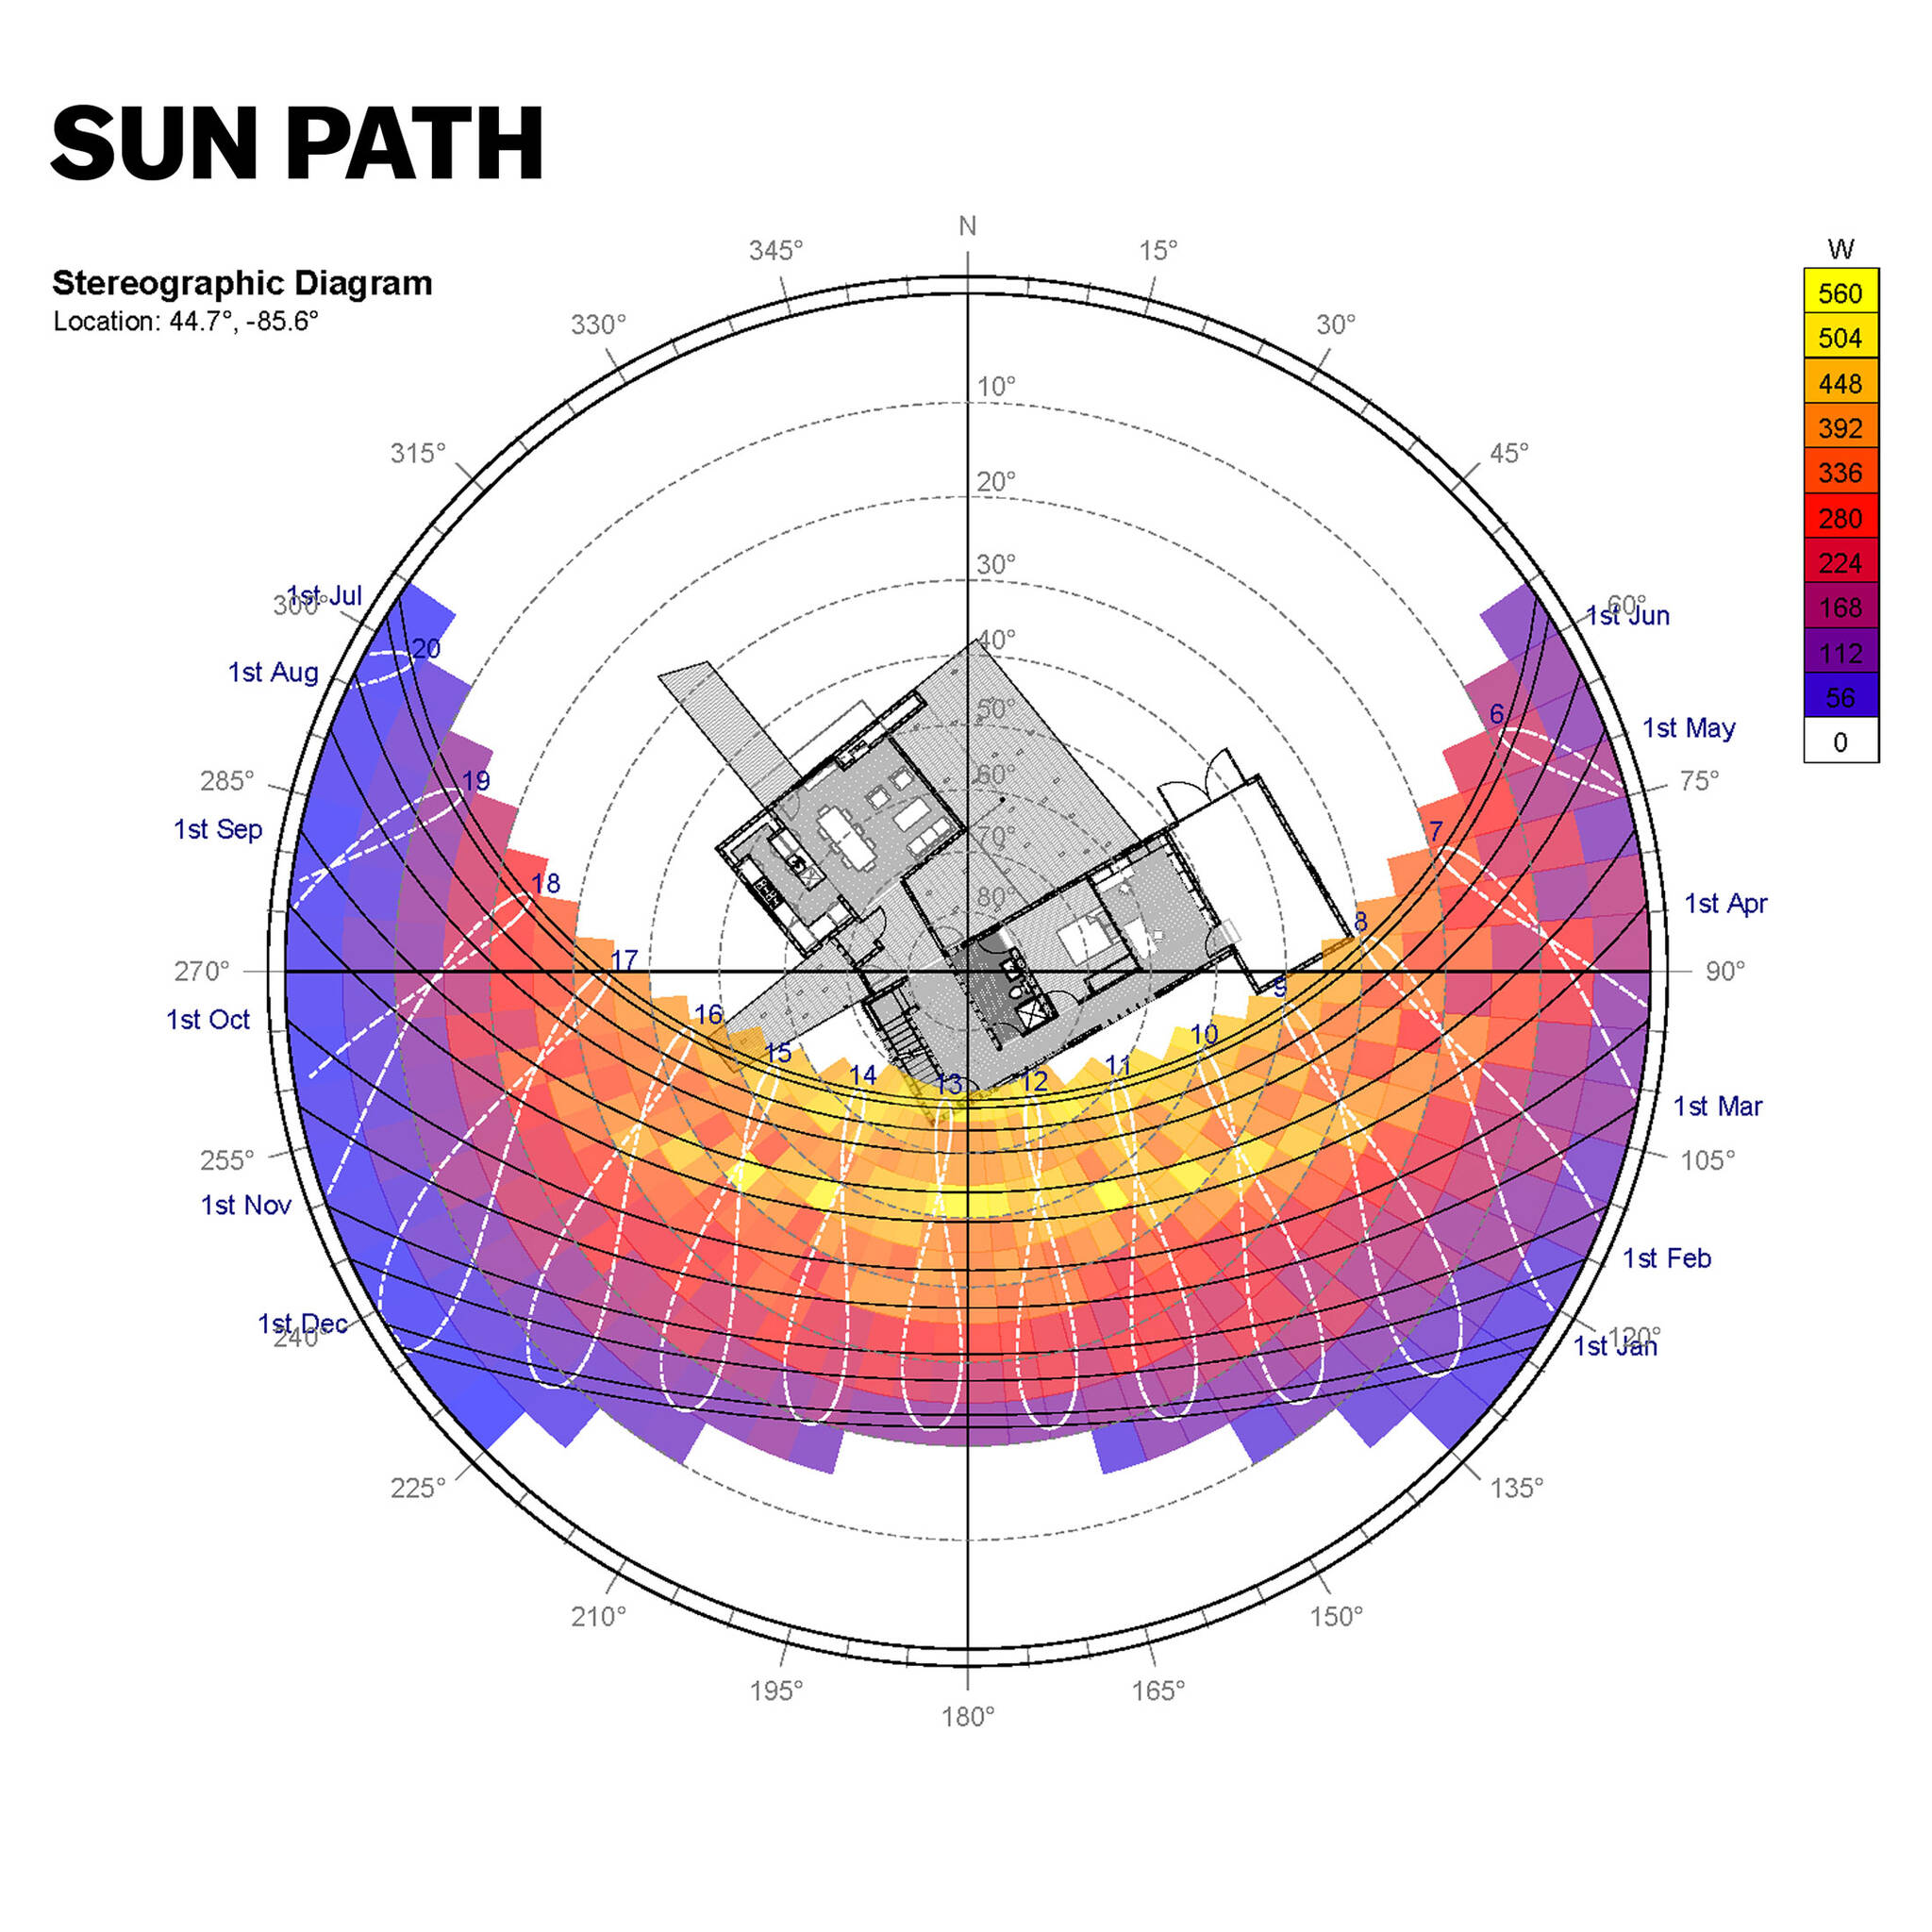 Stereographic diagram of the sun path on the sustainable lake house project in Omena, Michigan designed by the architecture studio Danny Forster & Architecture